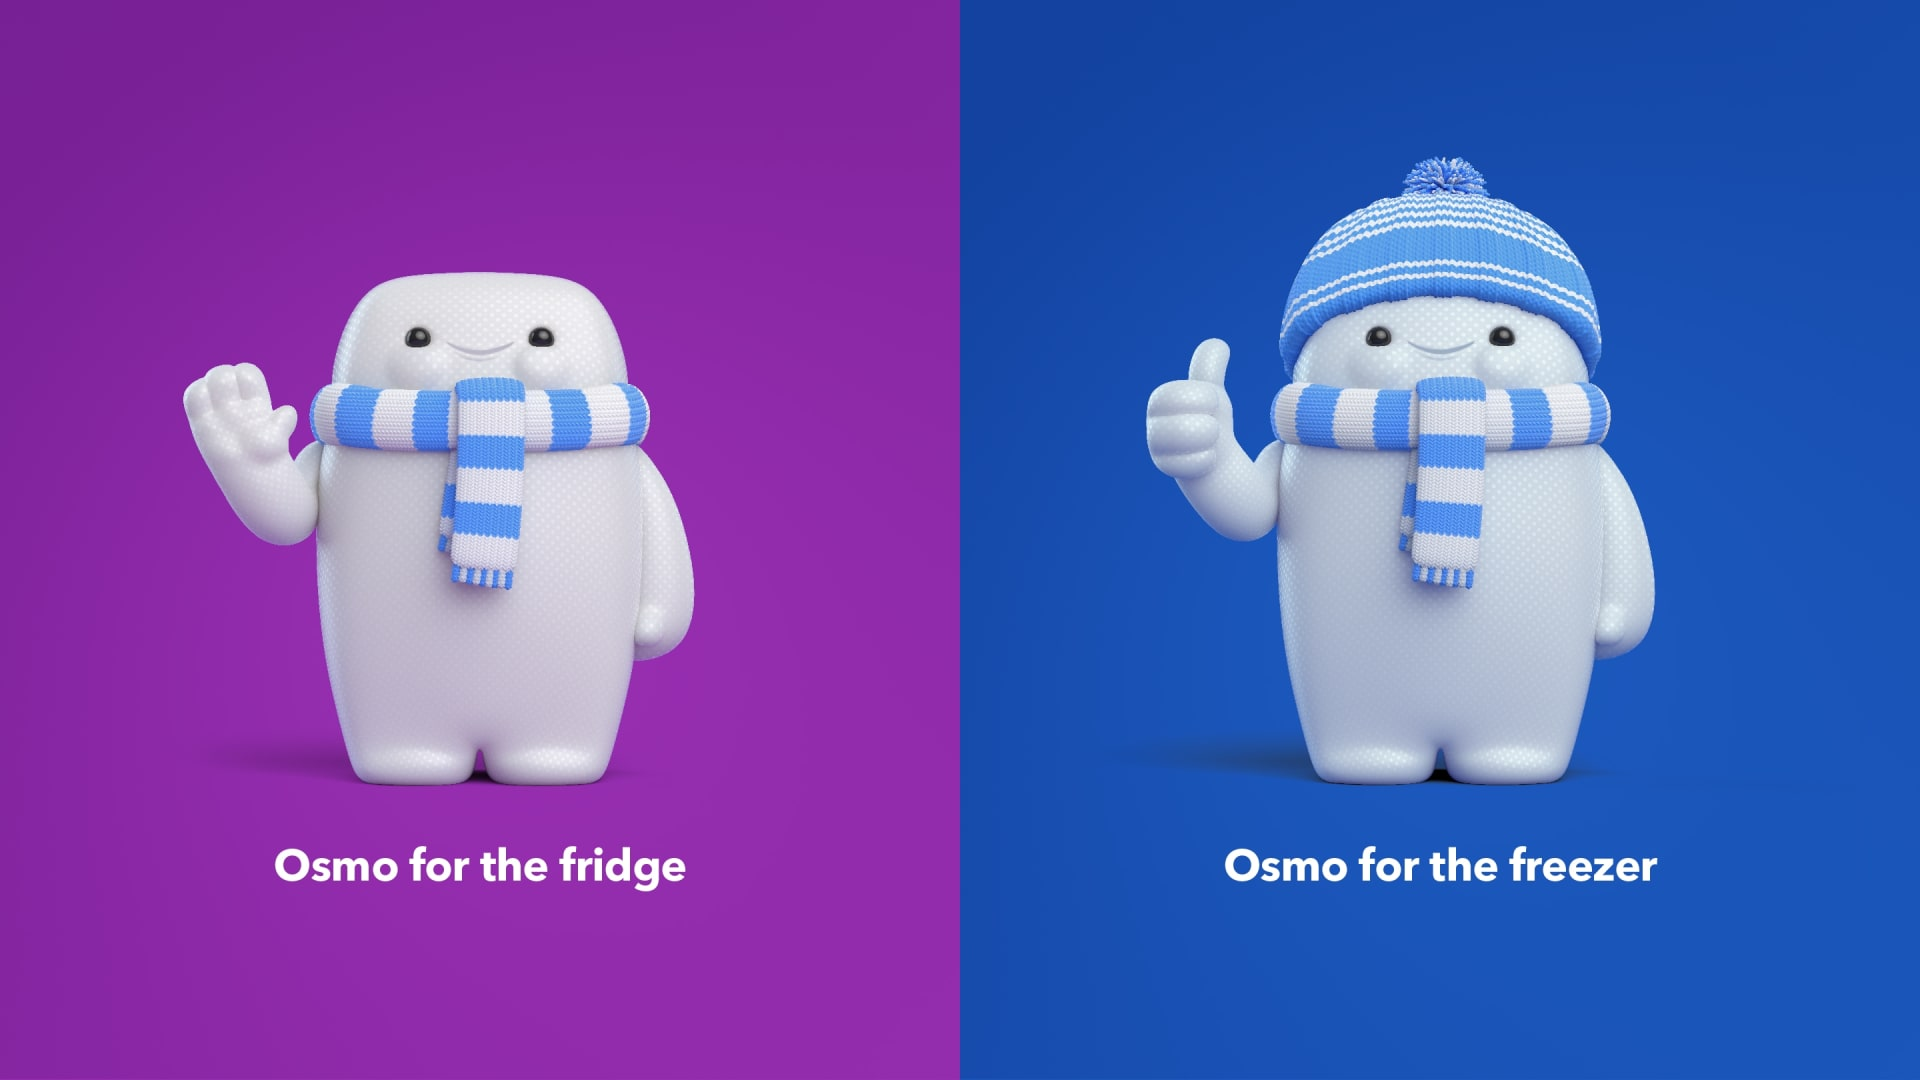 Osmo for the fridge and Osmo for the freezer illustrations